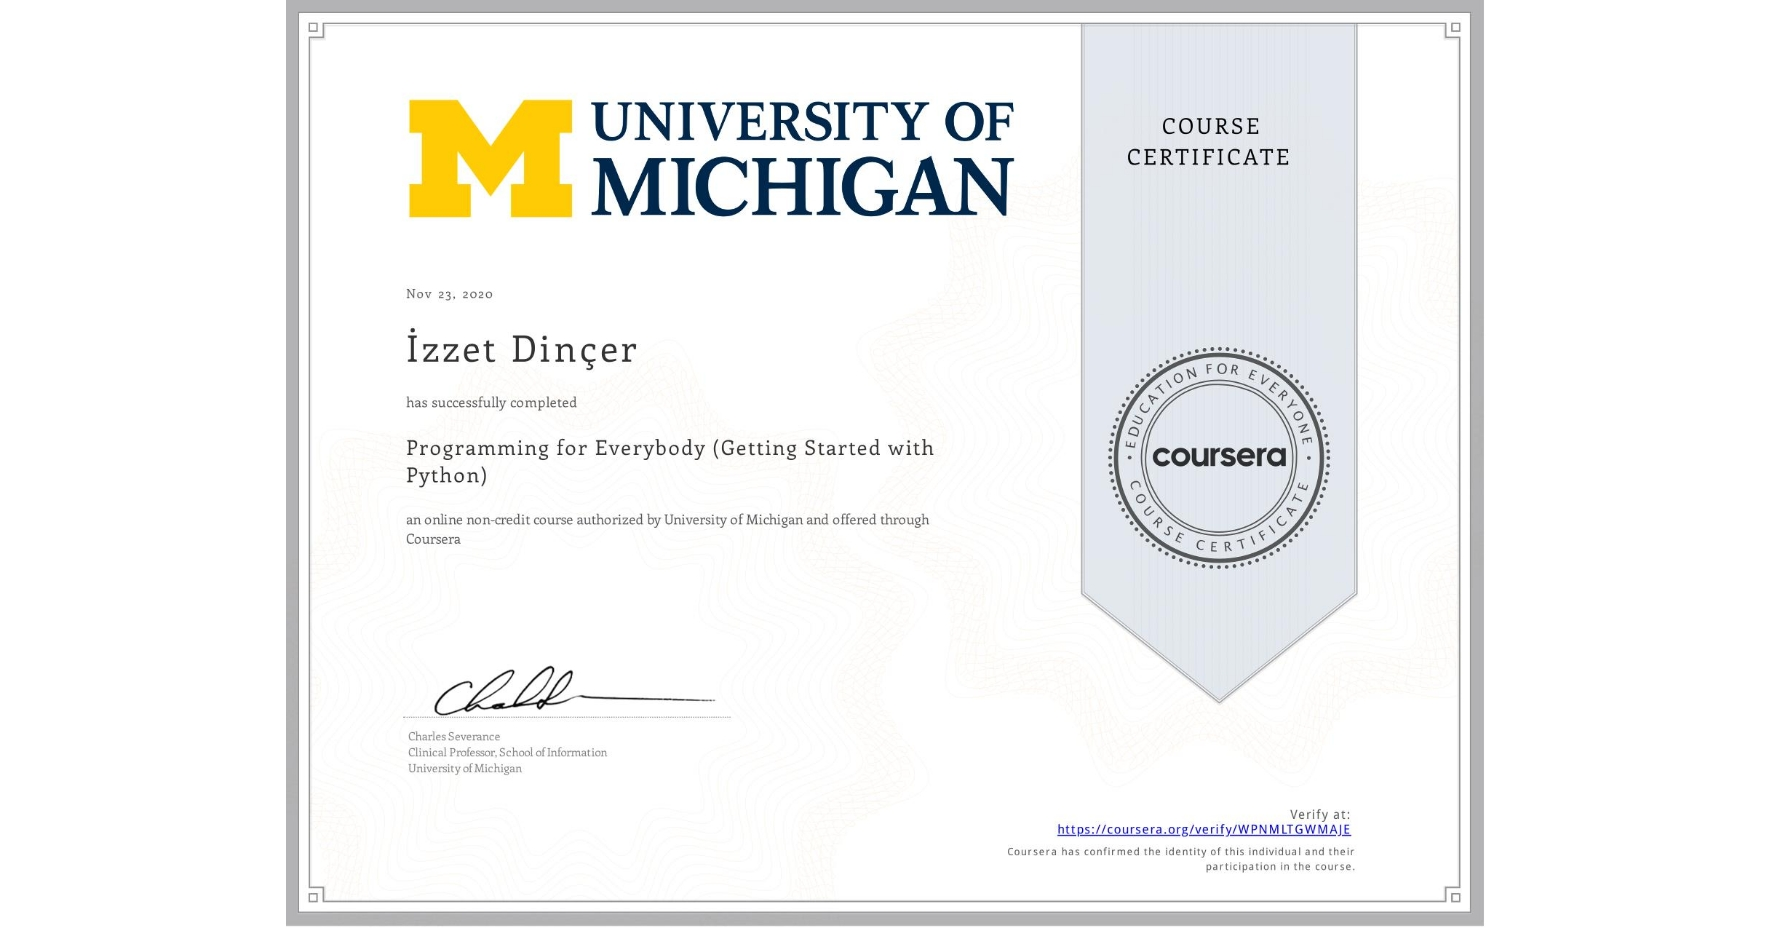 View certificate for İzzet Dinçer, Programming for Everybody (Getting Started with Python), an online non-credit course authorized by University of Michigan and offered through Coursera